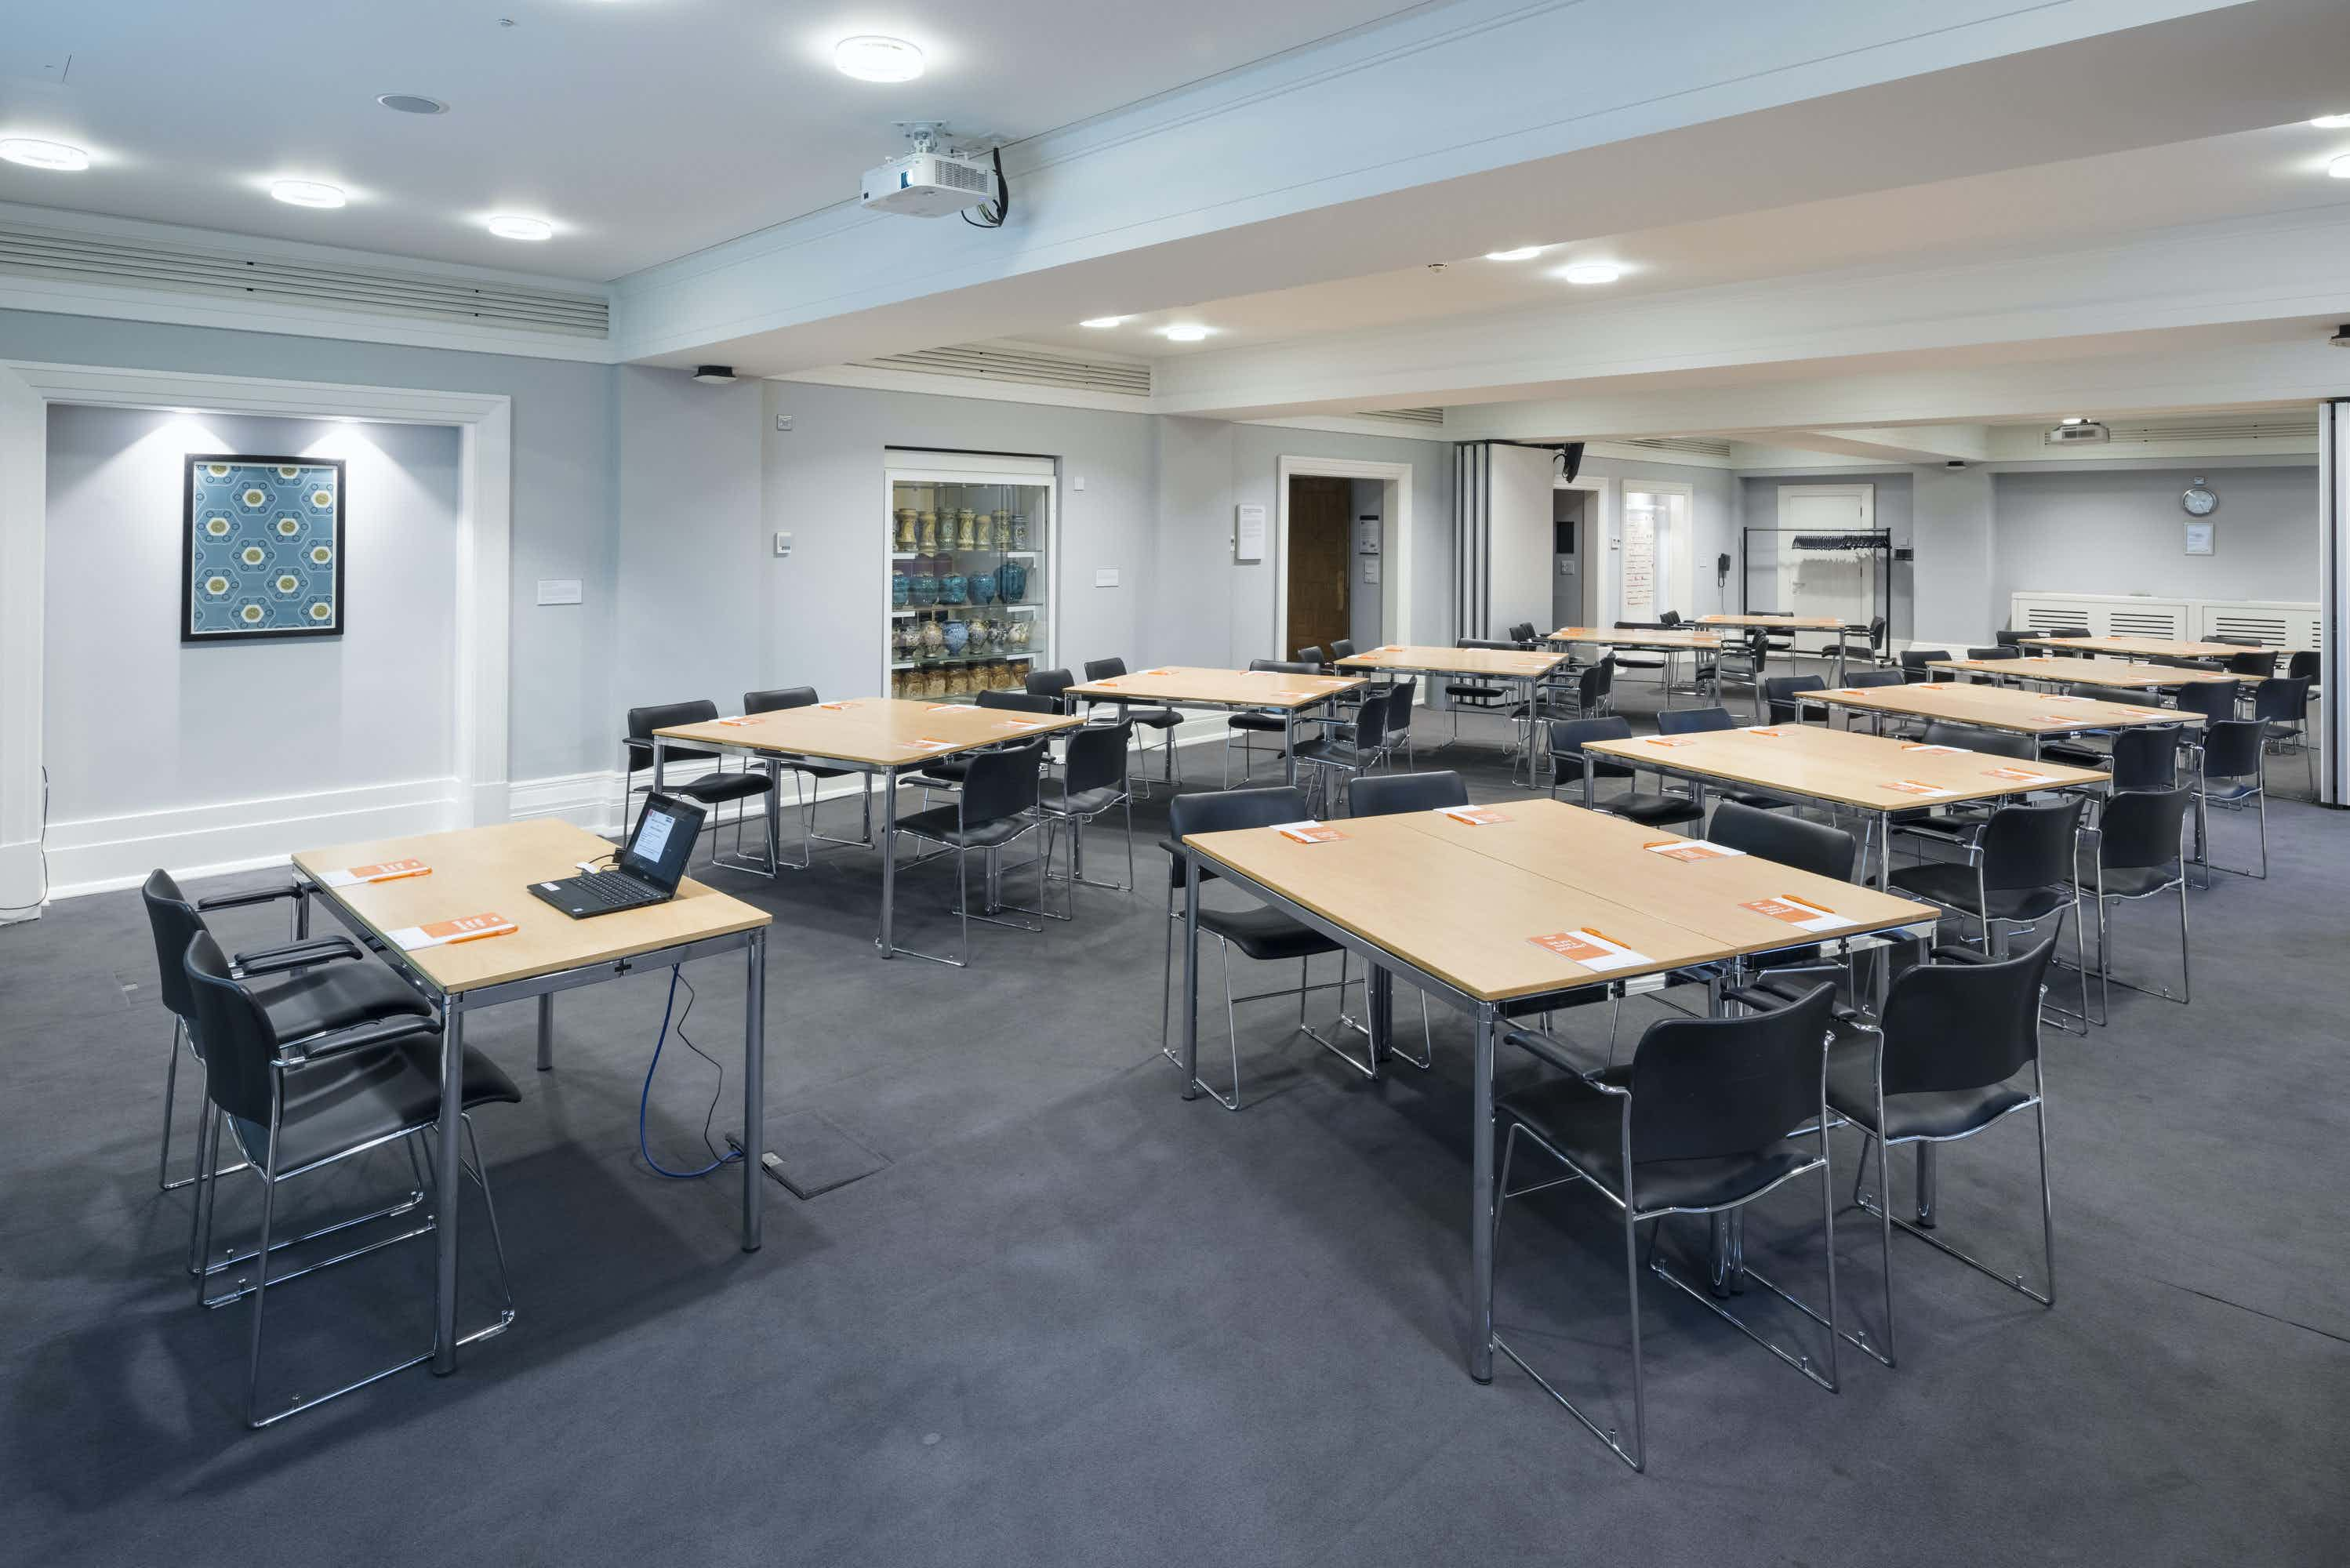 Franks and Steel Room, Event Spaces at Wellcome Collection